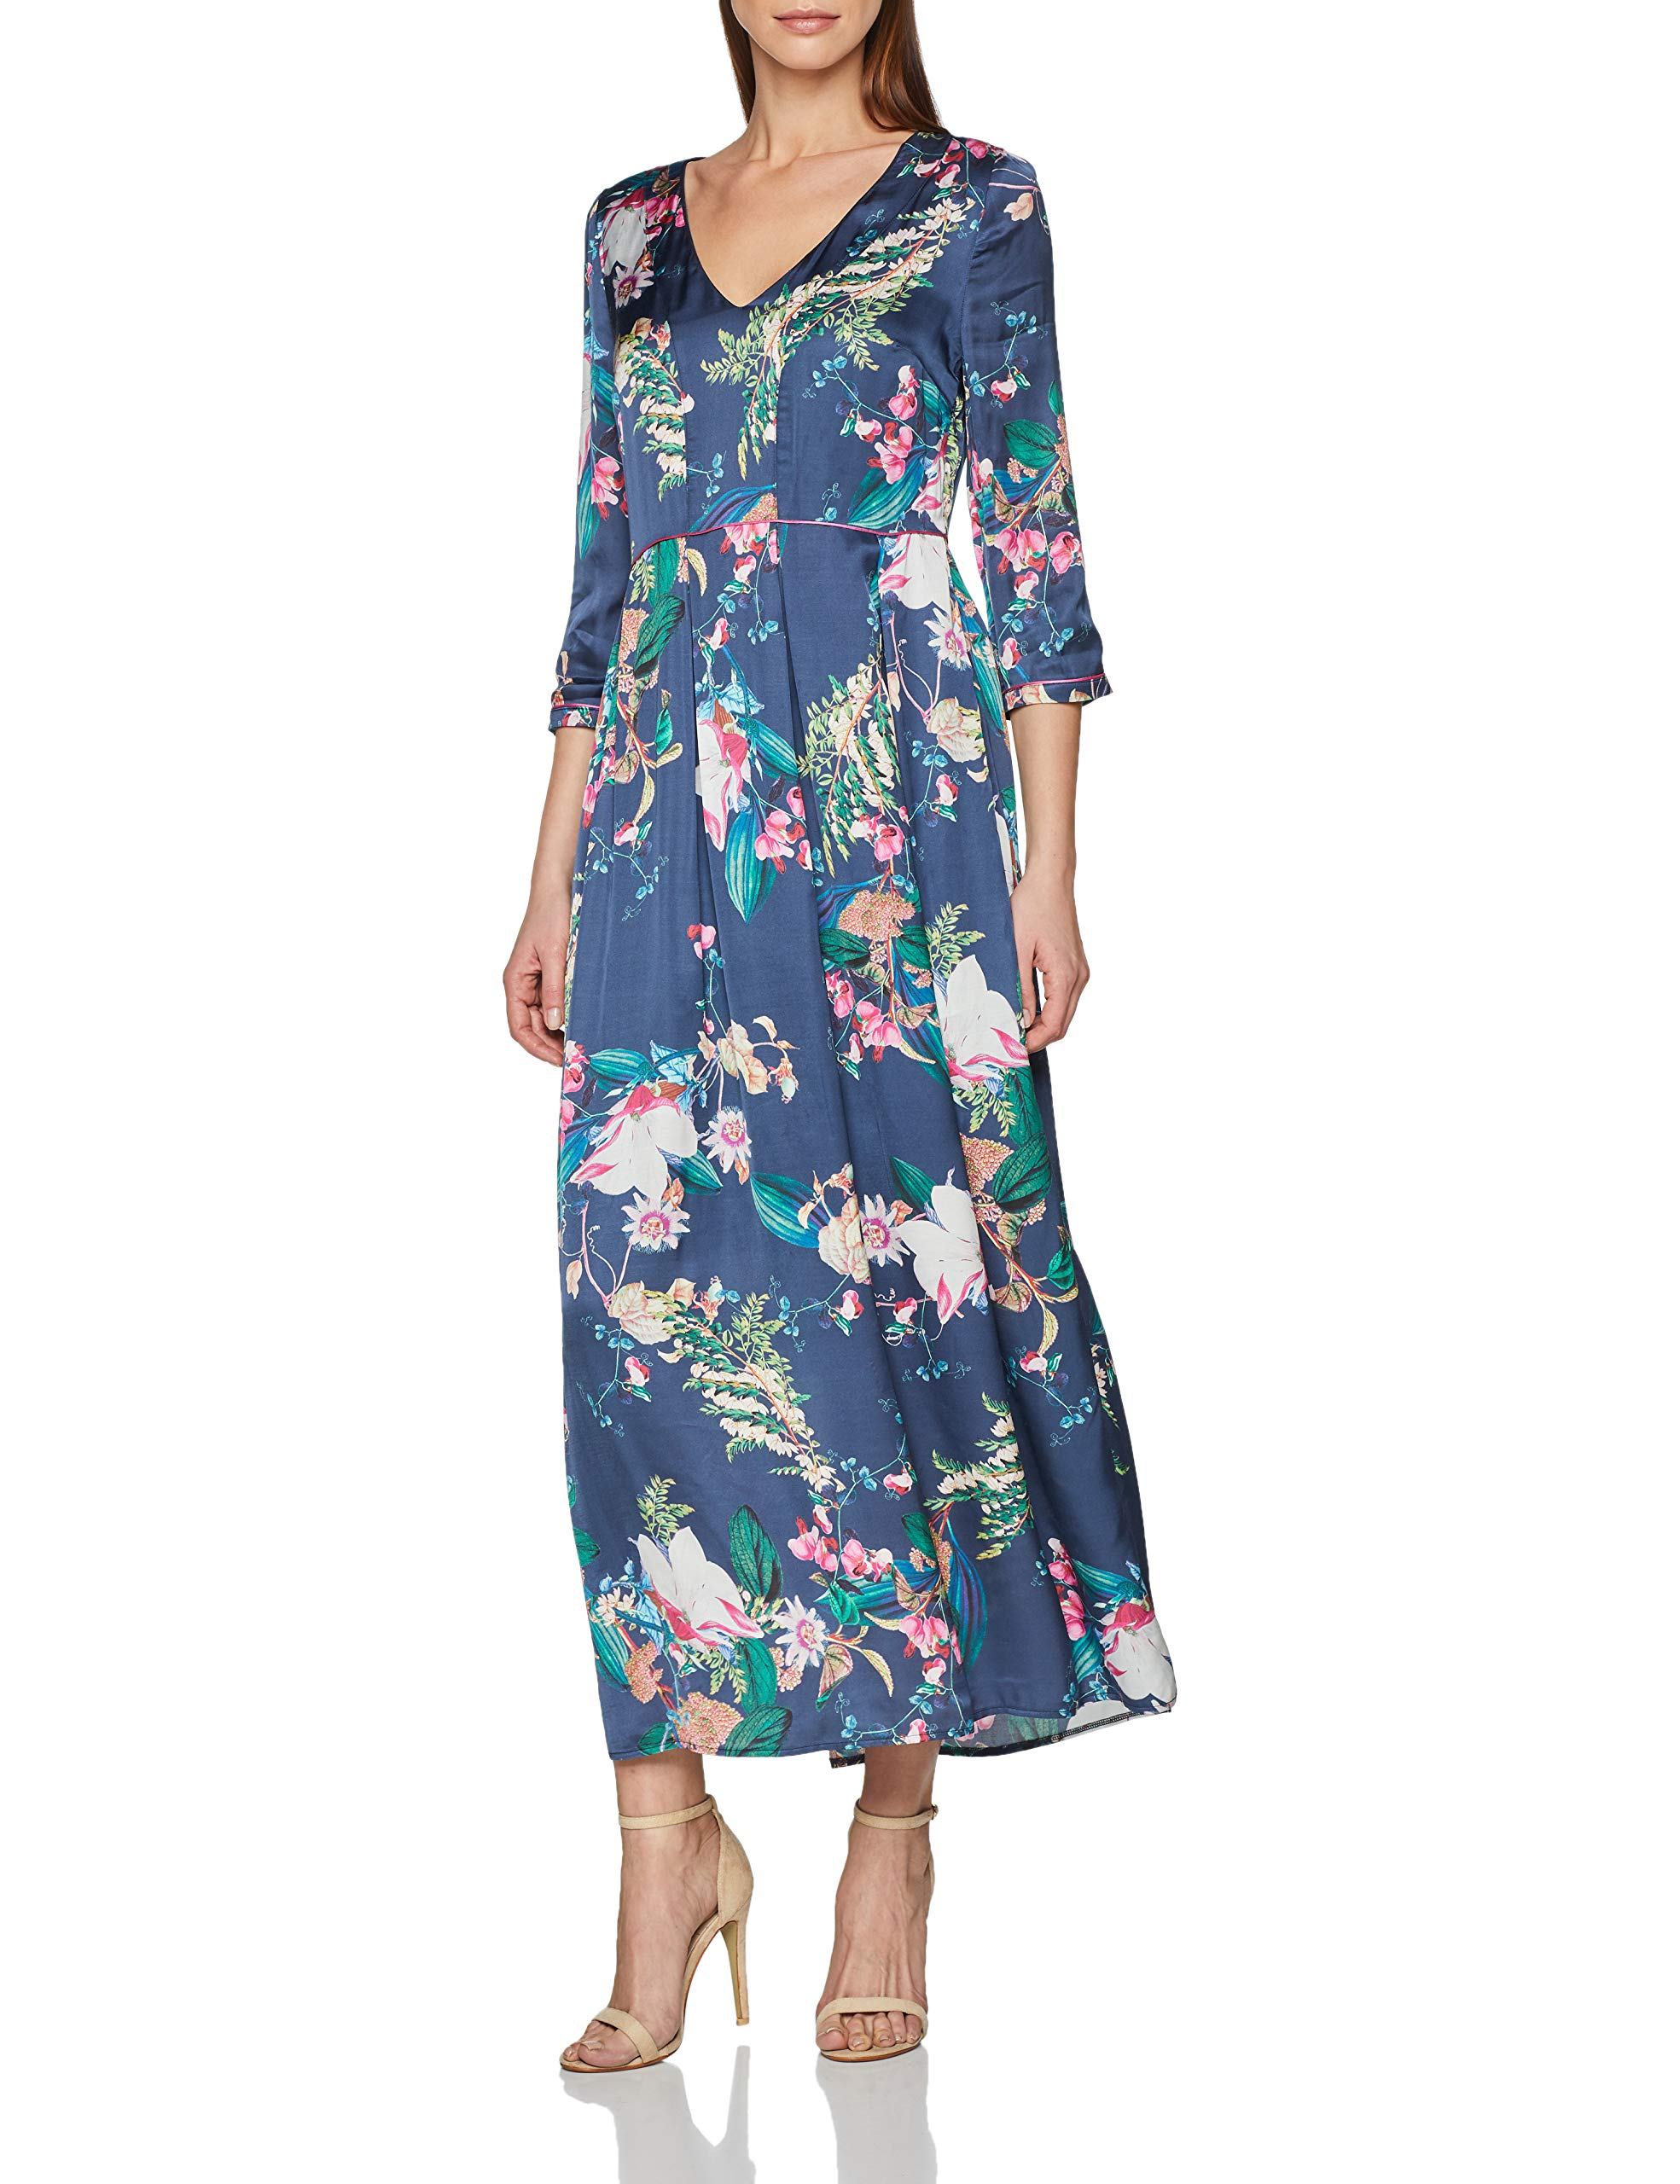 RobeBleumidnight 69044taille Daniel Hechter Fabricant42Femme Maxi Dress 6v7IbfgYy